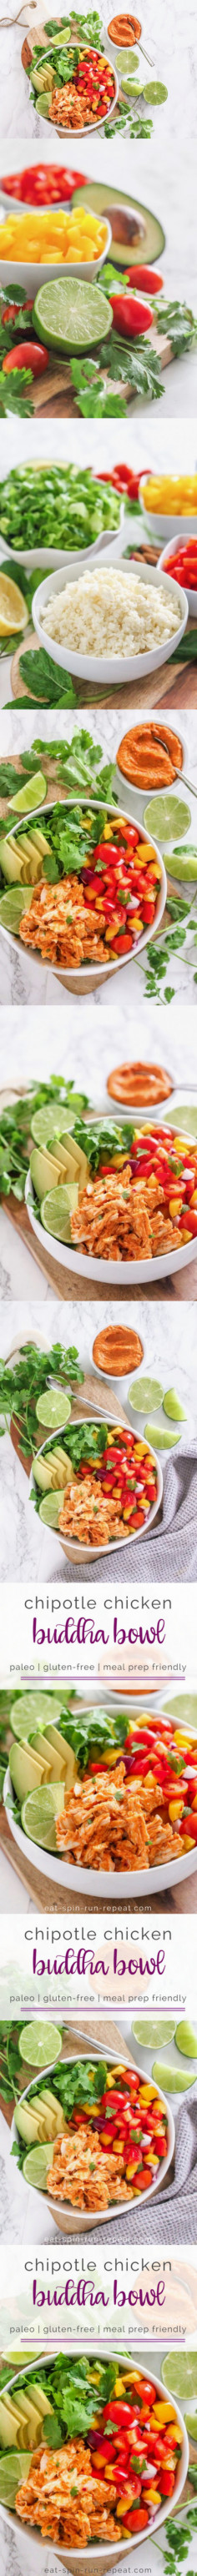 Chipotle Chicken Buddha Bowl | Eat, Spin, Run, Repeat